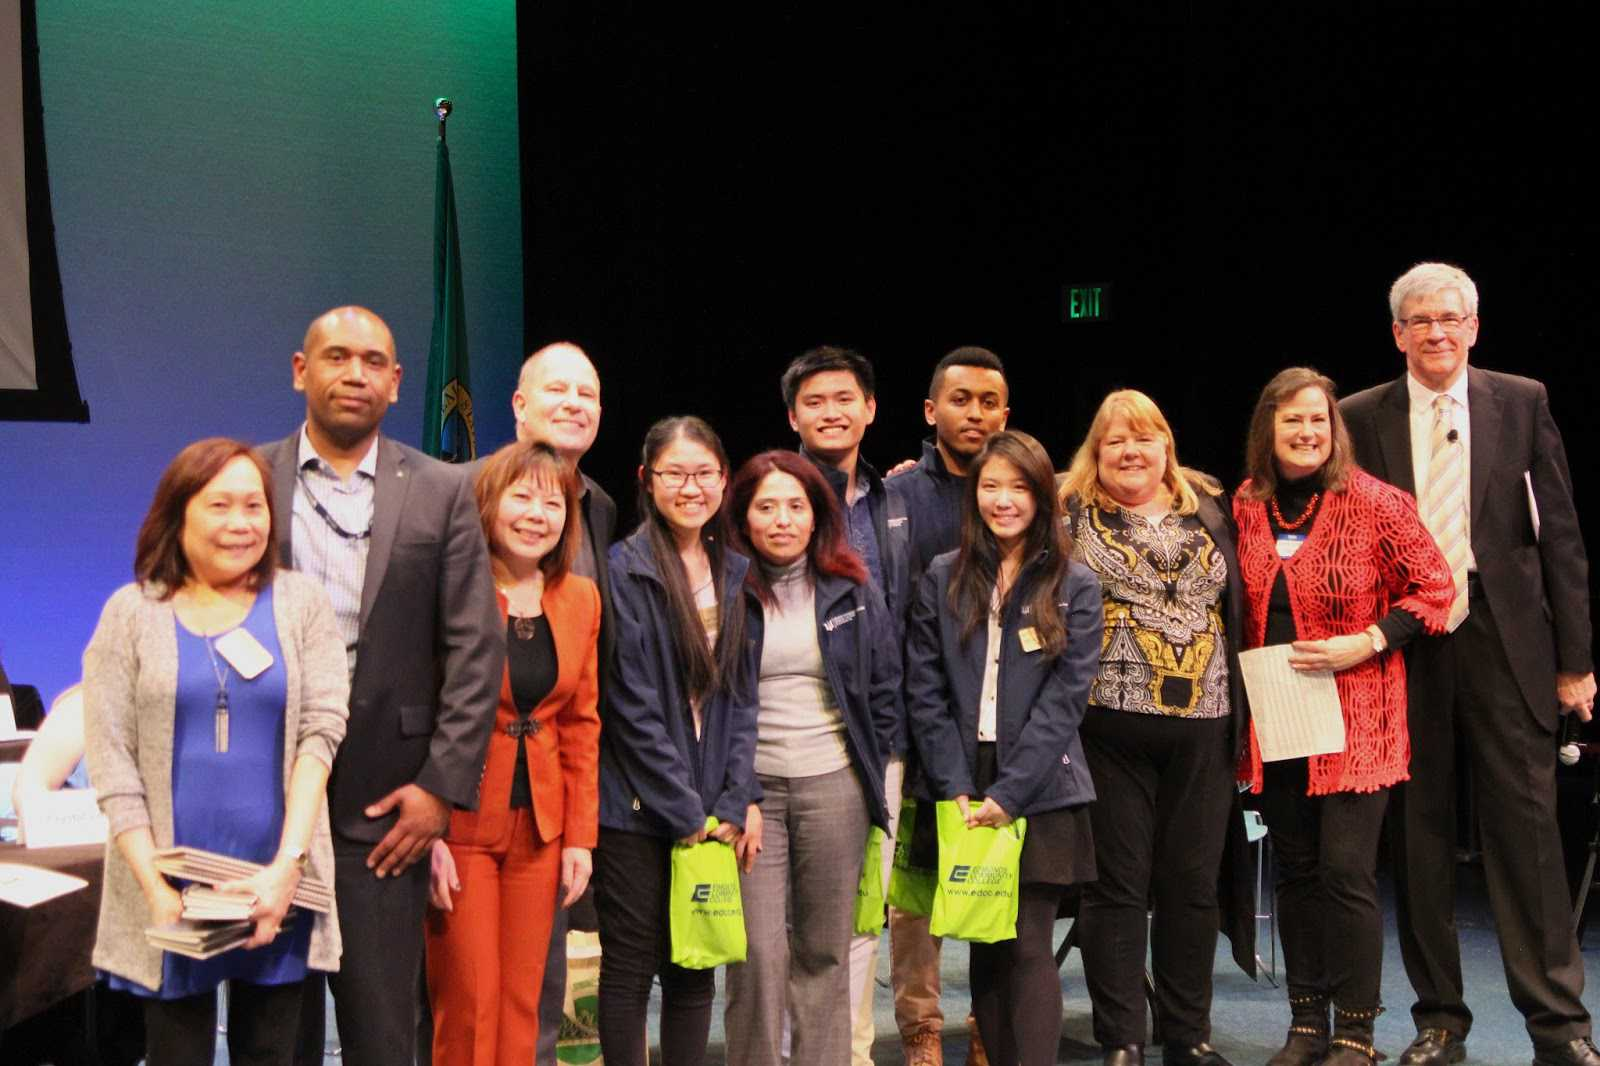 (from left) Edmonds CC employees Lynne Rigoroso, executive assistant;  Dan White, Paralegal instructor; Marie Tran, Business Management  instructor; Wayne Anthony, director of the Center for Student Engagement  and Leadership; Ethics Challenge team members Linh Tran, Maria French,  Tri Minh Do, Natch Sriwongthai, and Naol Debele; Dr. Terry Cox, vice  president of Workforce and Development and Training; Kathryn Wyatt,  Boeing staff analyst; and Charles Ruthford, master of ceremonies.